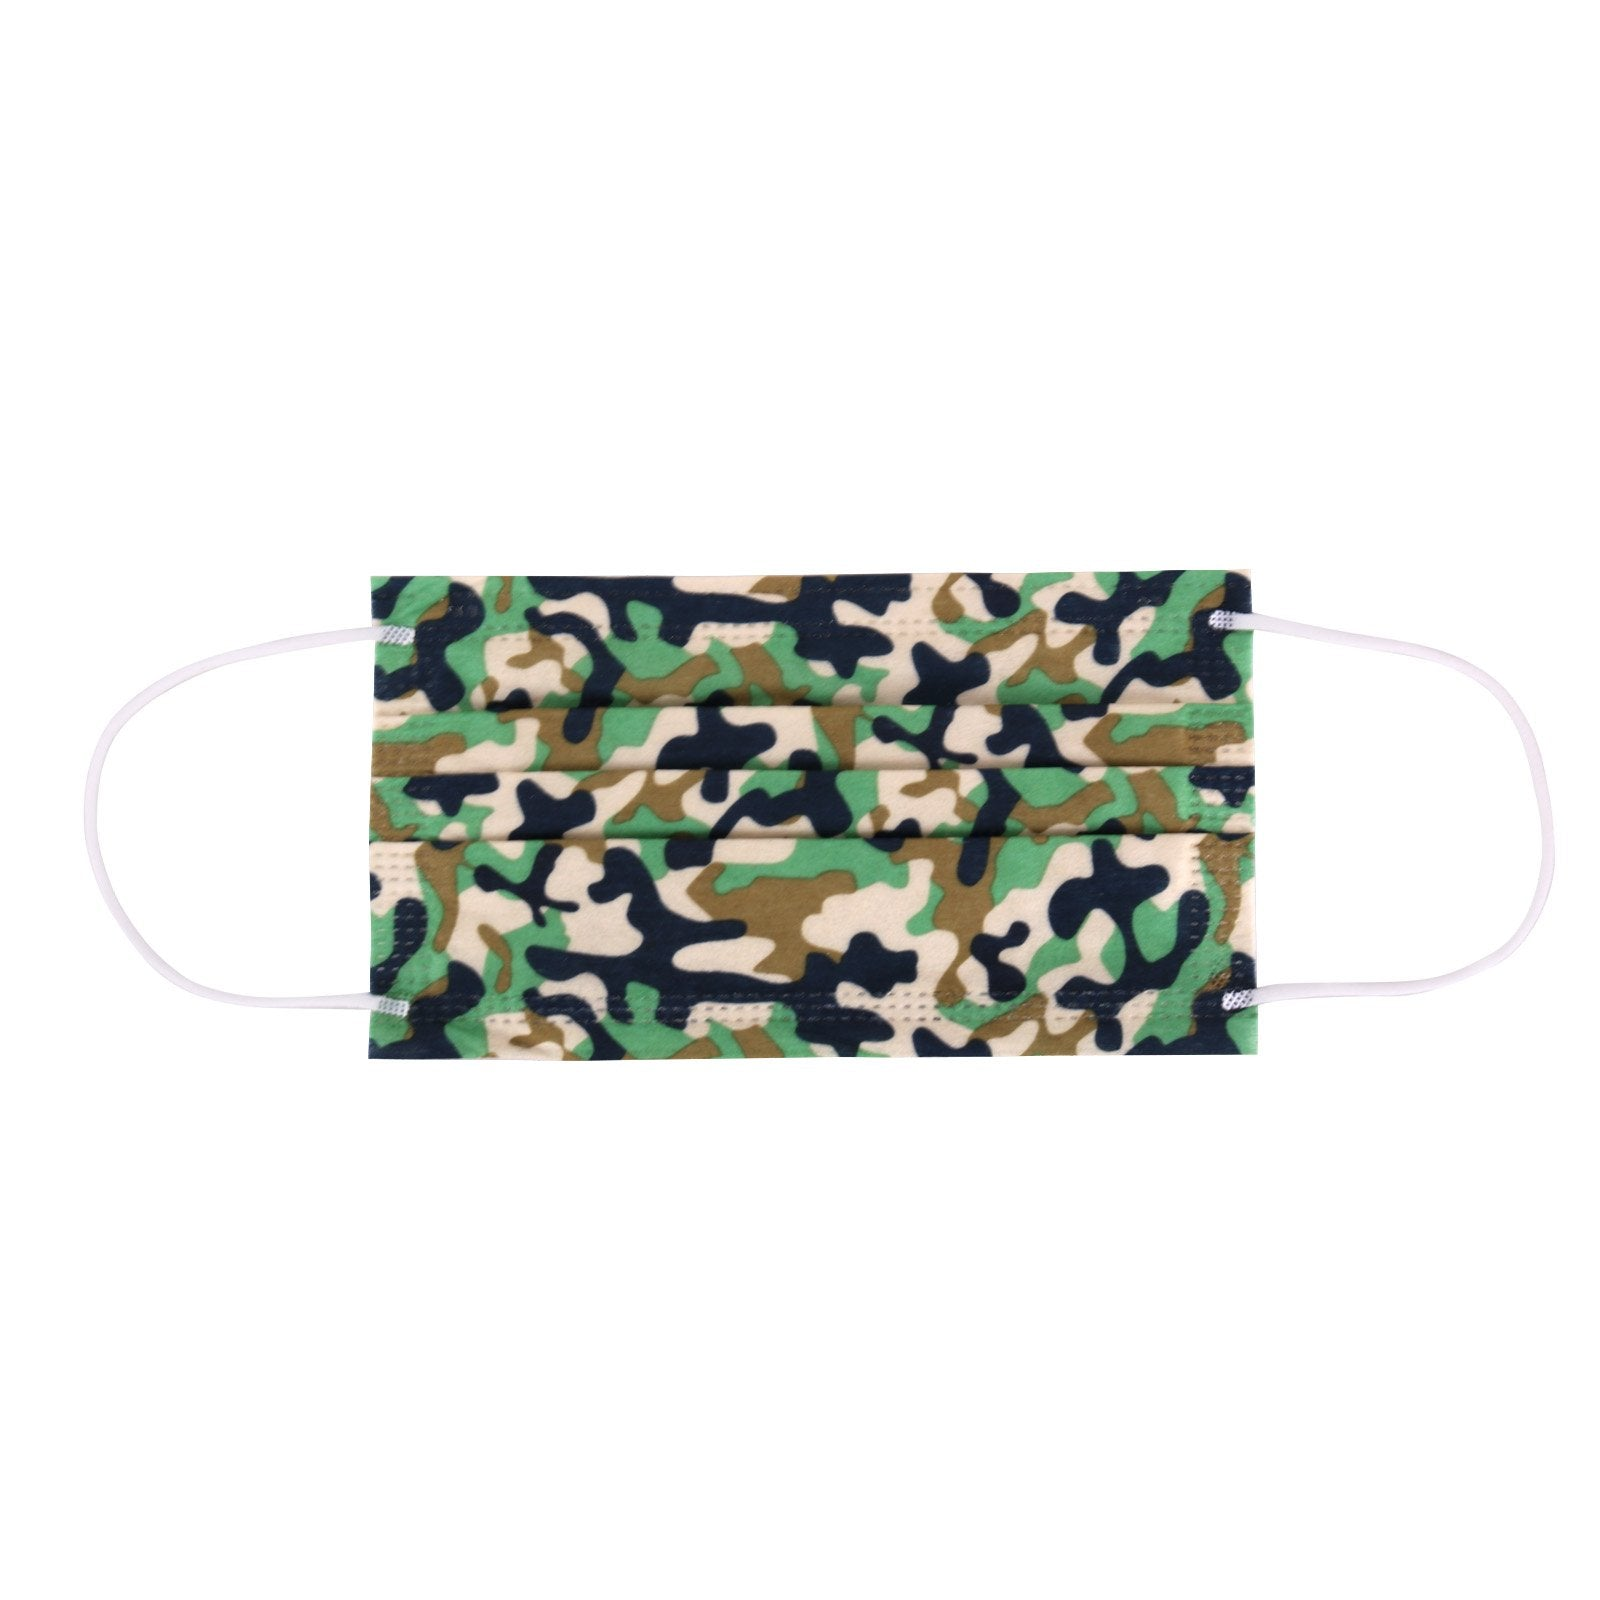 50Pcs American Bling  (10Pcs Pack x 5) Green Camo Print 3Ply Disposable Face Masks